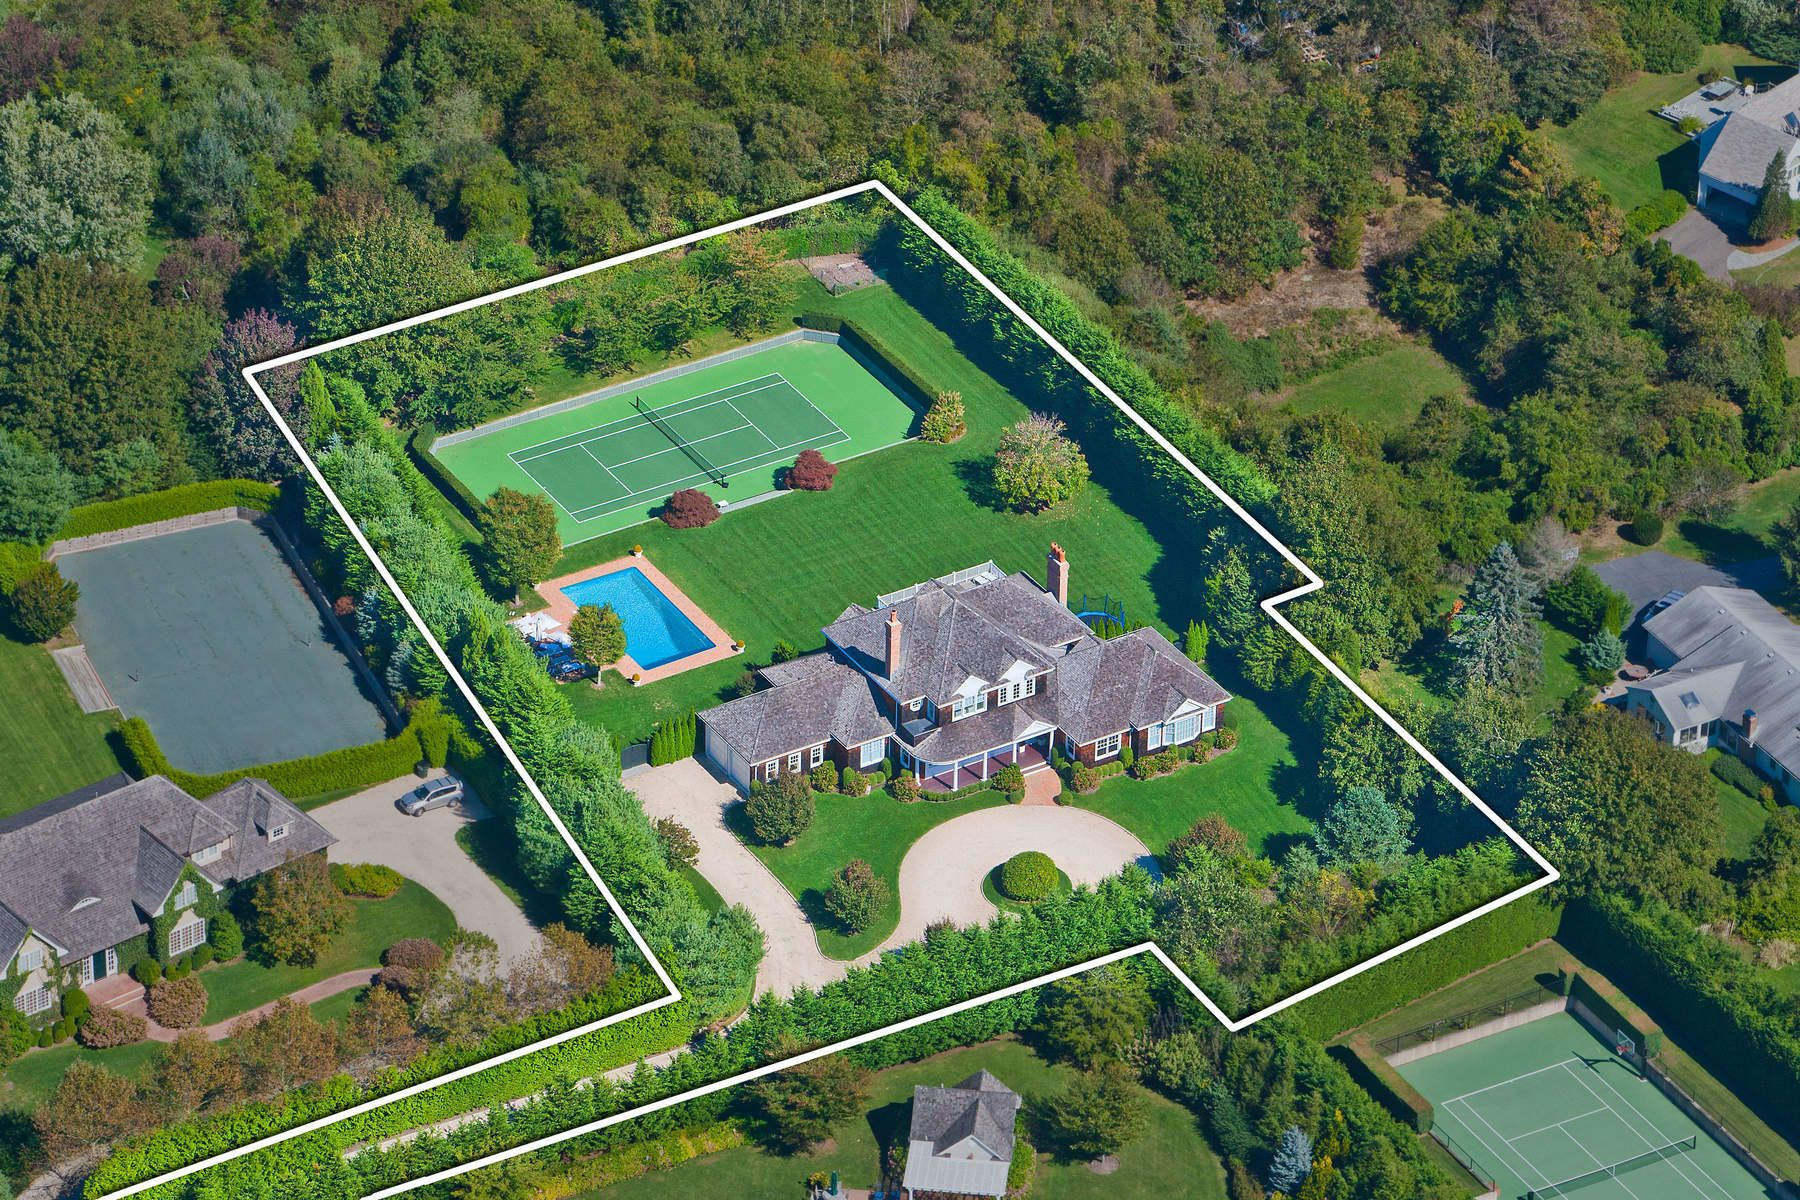 Tek Ailelik Ev için Satış at Noteworthy Gated Estate in Southampton 5 Cameron Way, Southampton, New York, 11968 Amerika Birleşik Devletleri